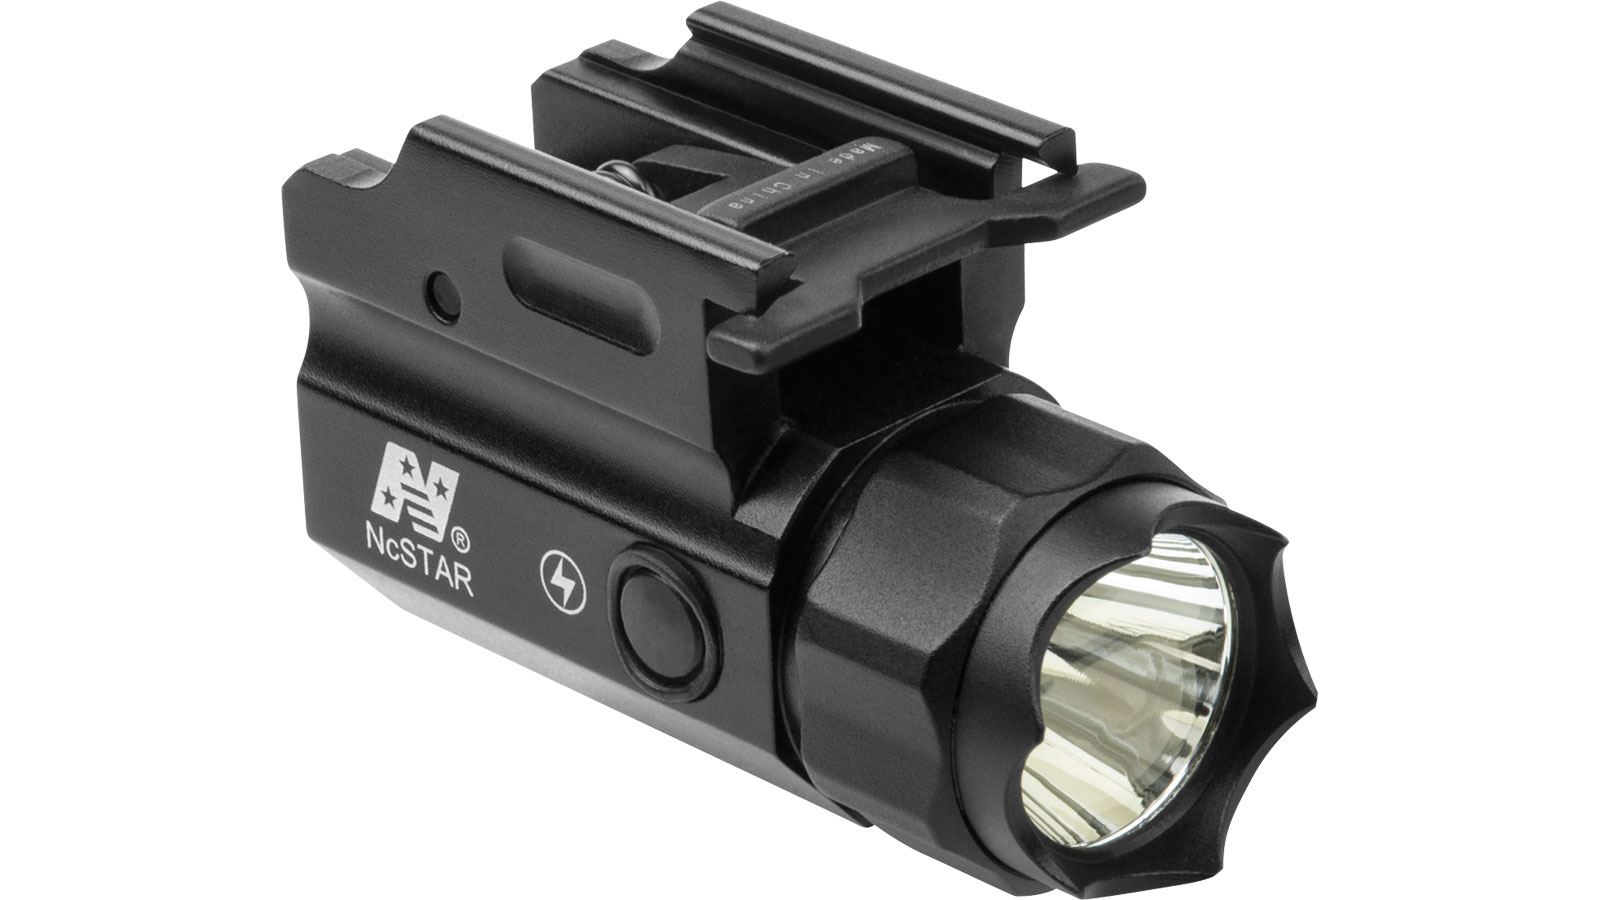 NCStar ACQPTF Compact Flashlight Compact Flashlight w/Strobe 3 Watt CREE LED